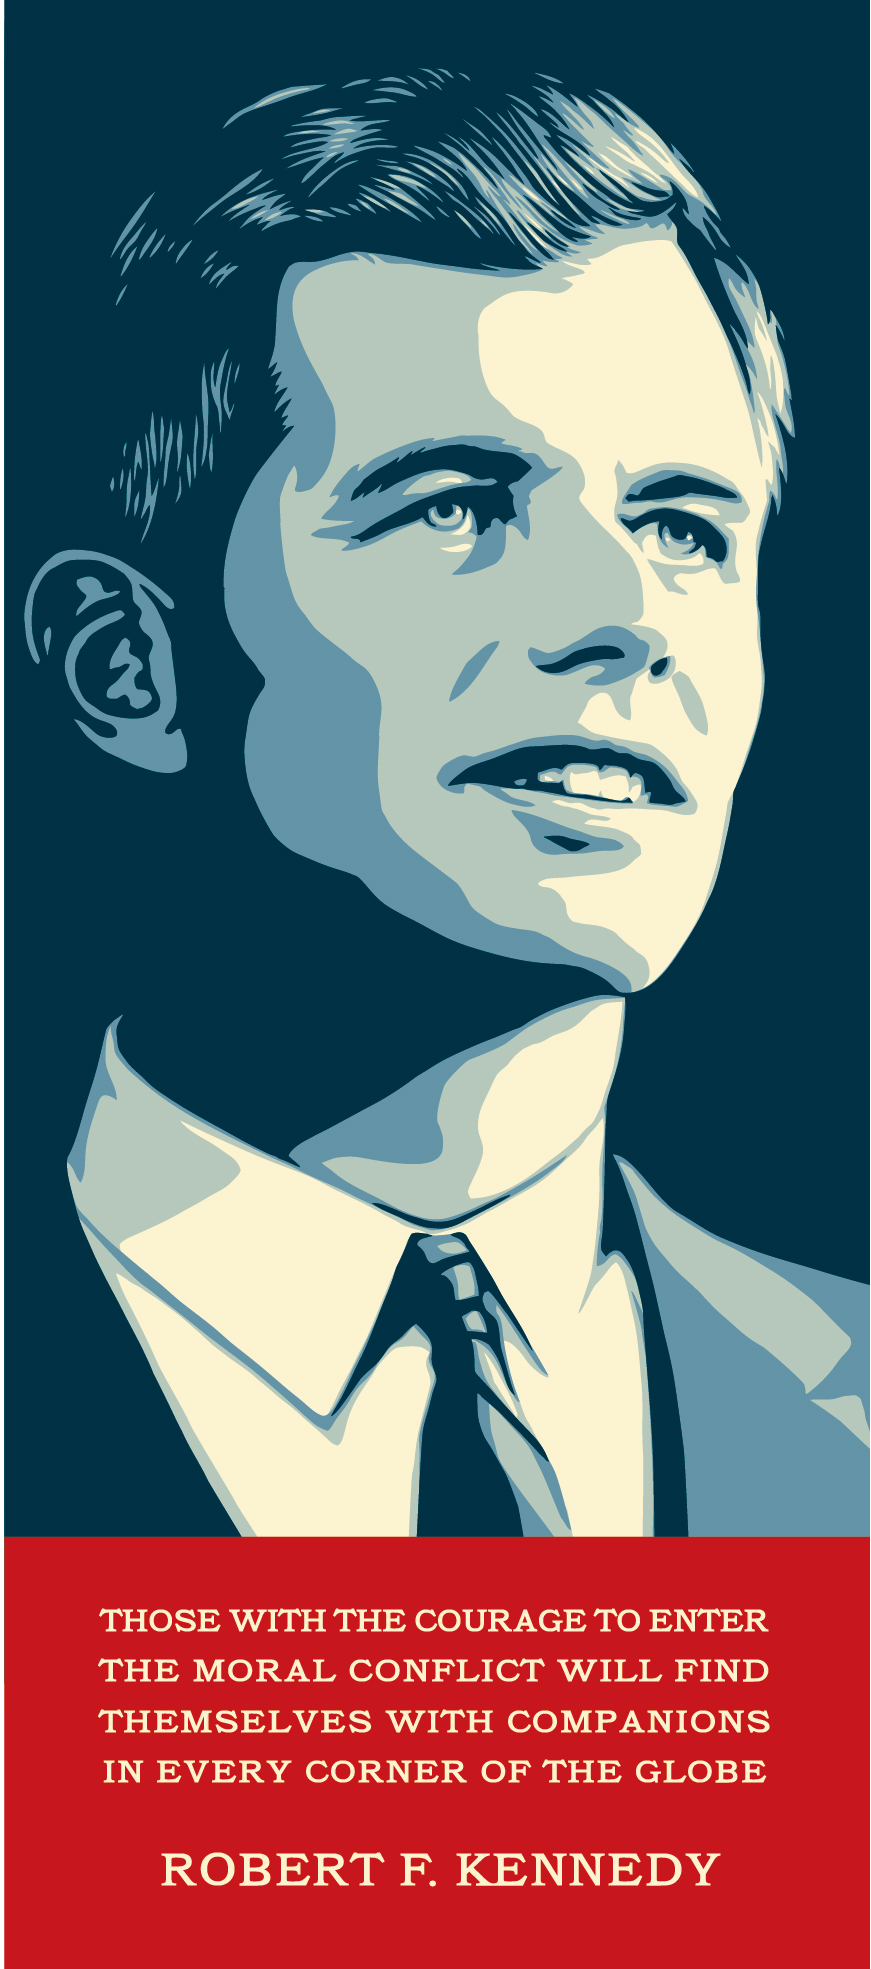 Shepard Fairey | Commisioned Portrait of Robert F. Kennedy